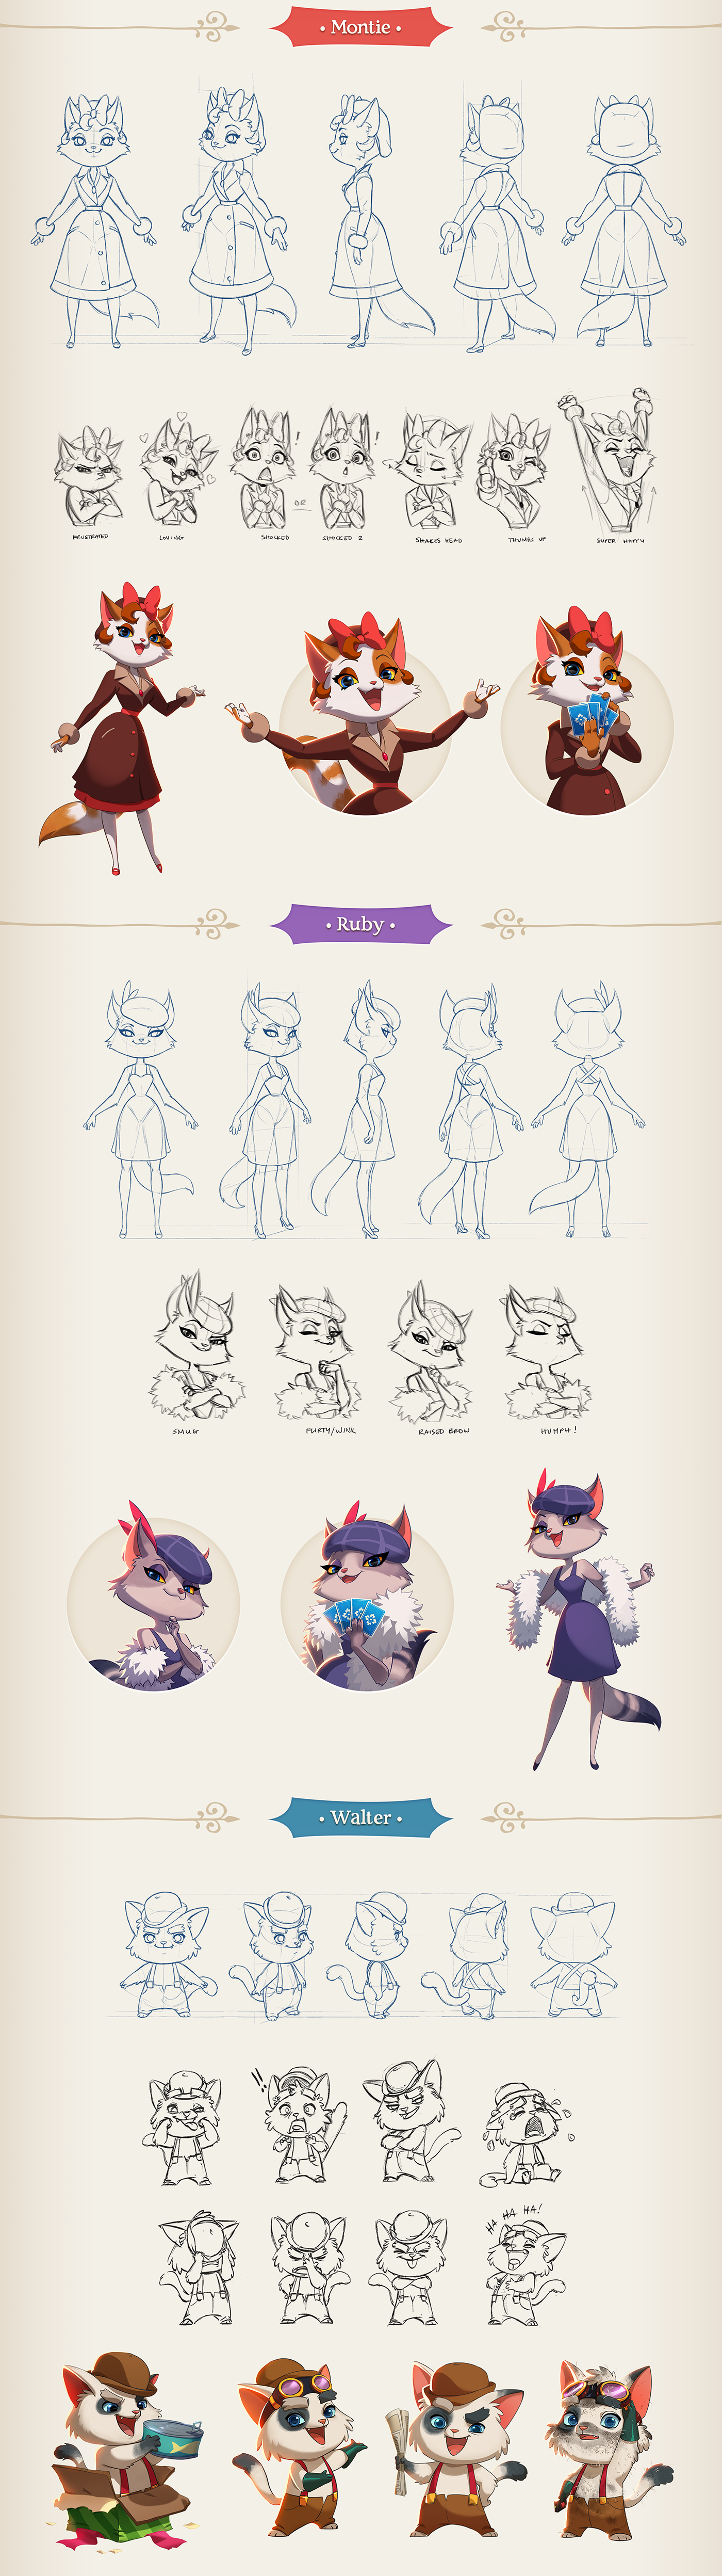 Shuffle Cats The Characters on Behance Animation